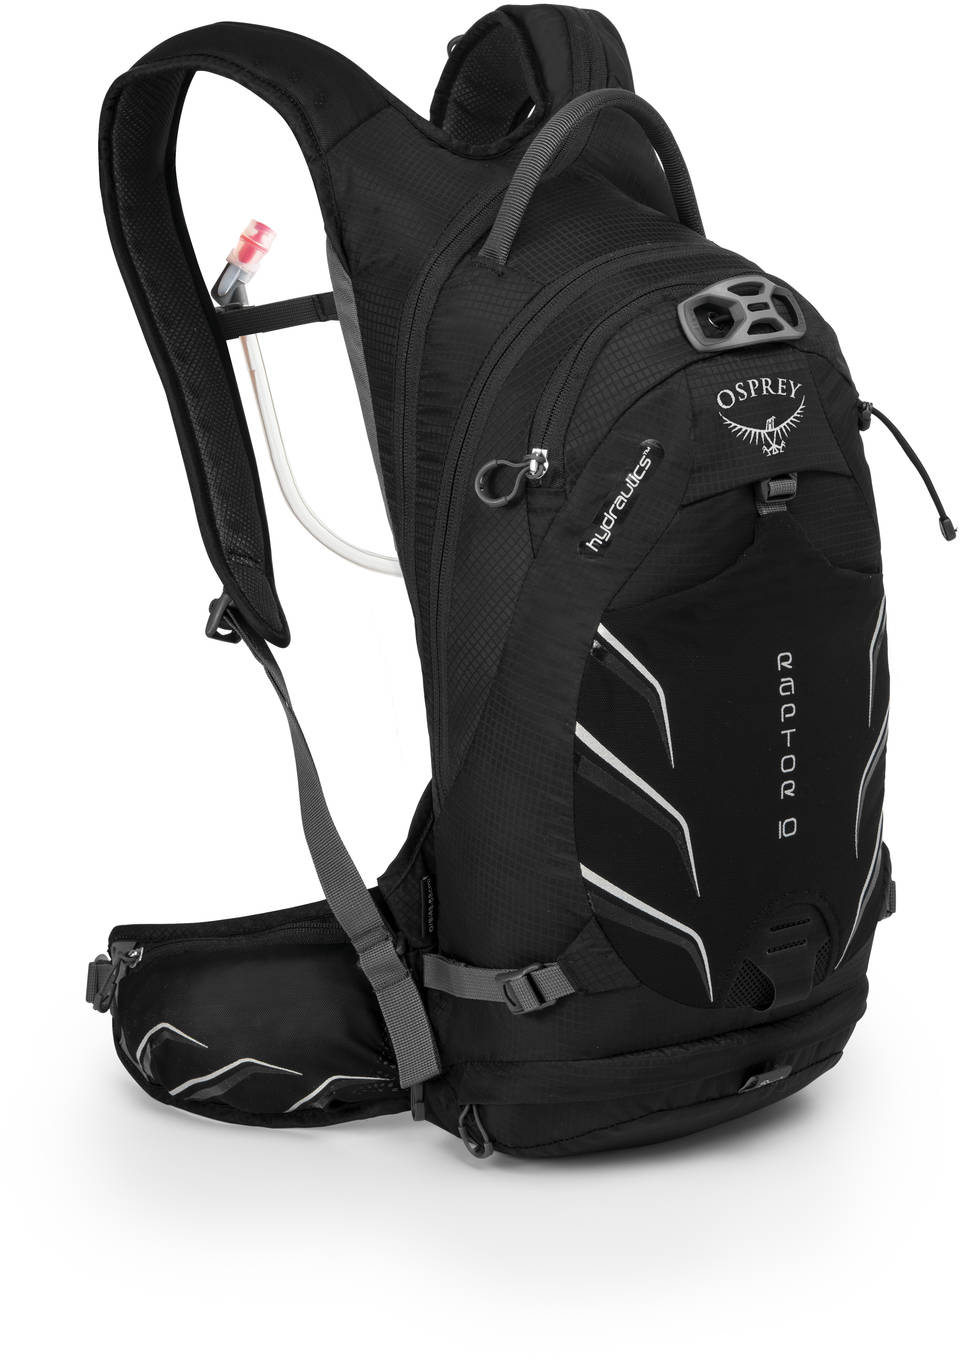 Osprey Raptor 6, 10 and 14 litre hydration packs - 2017/2018